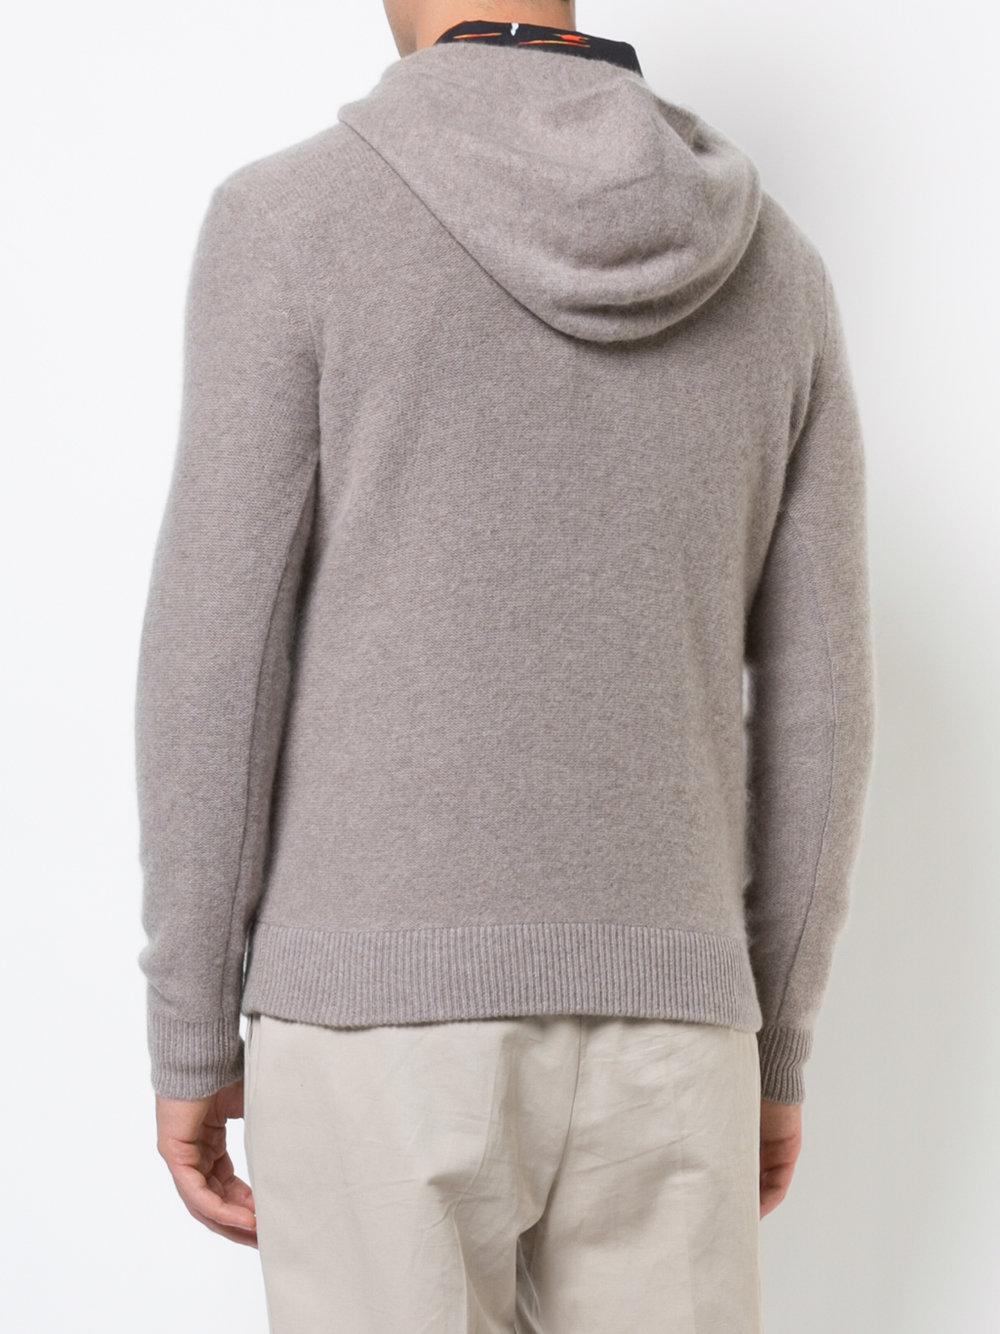 Cashmere Knit Sweater, Brown. Available From 1 Store. Buy from LUISAVIAROMA. Add to Collection. Product Reviews. Write My Review. Round neckline. Loose fit. Sample size: M. ModeSens is the premier Digital Fashion Shopping Assistant for the smart and informed. Learn more.